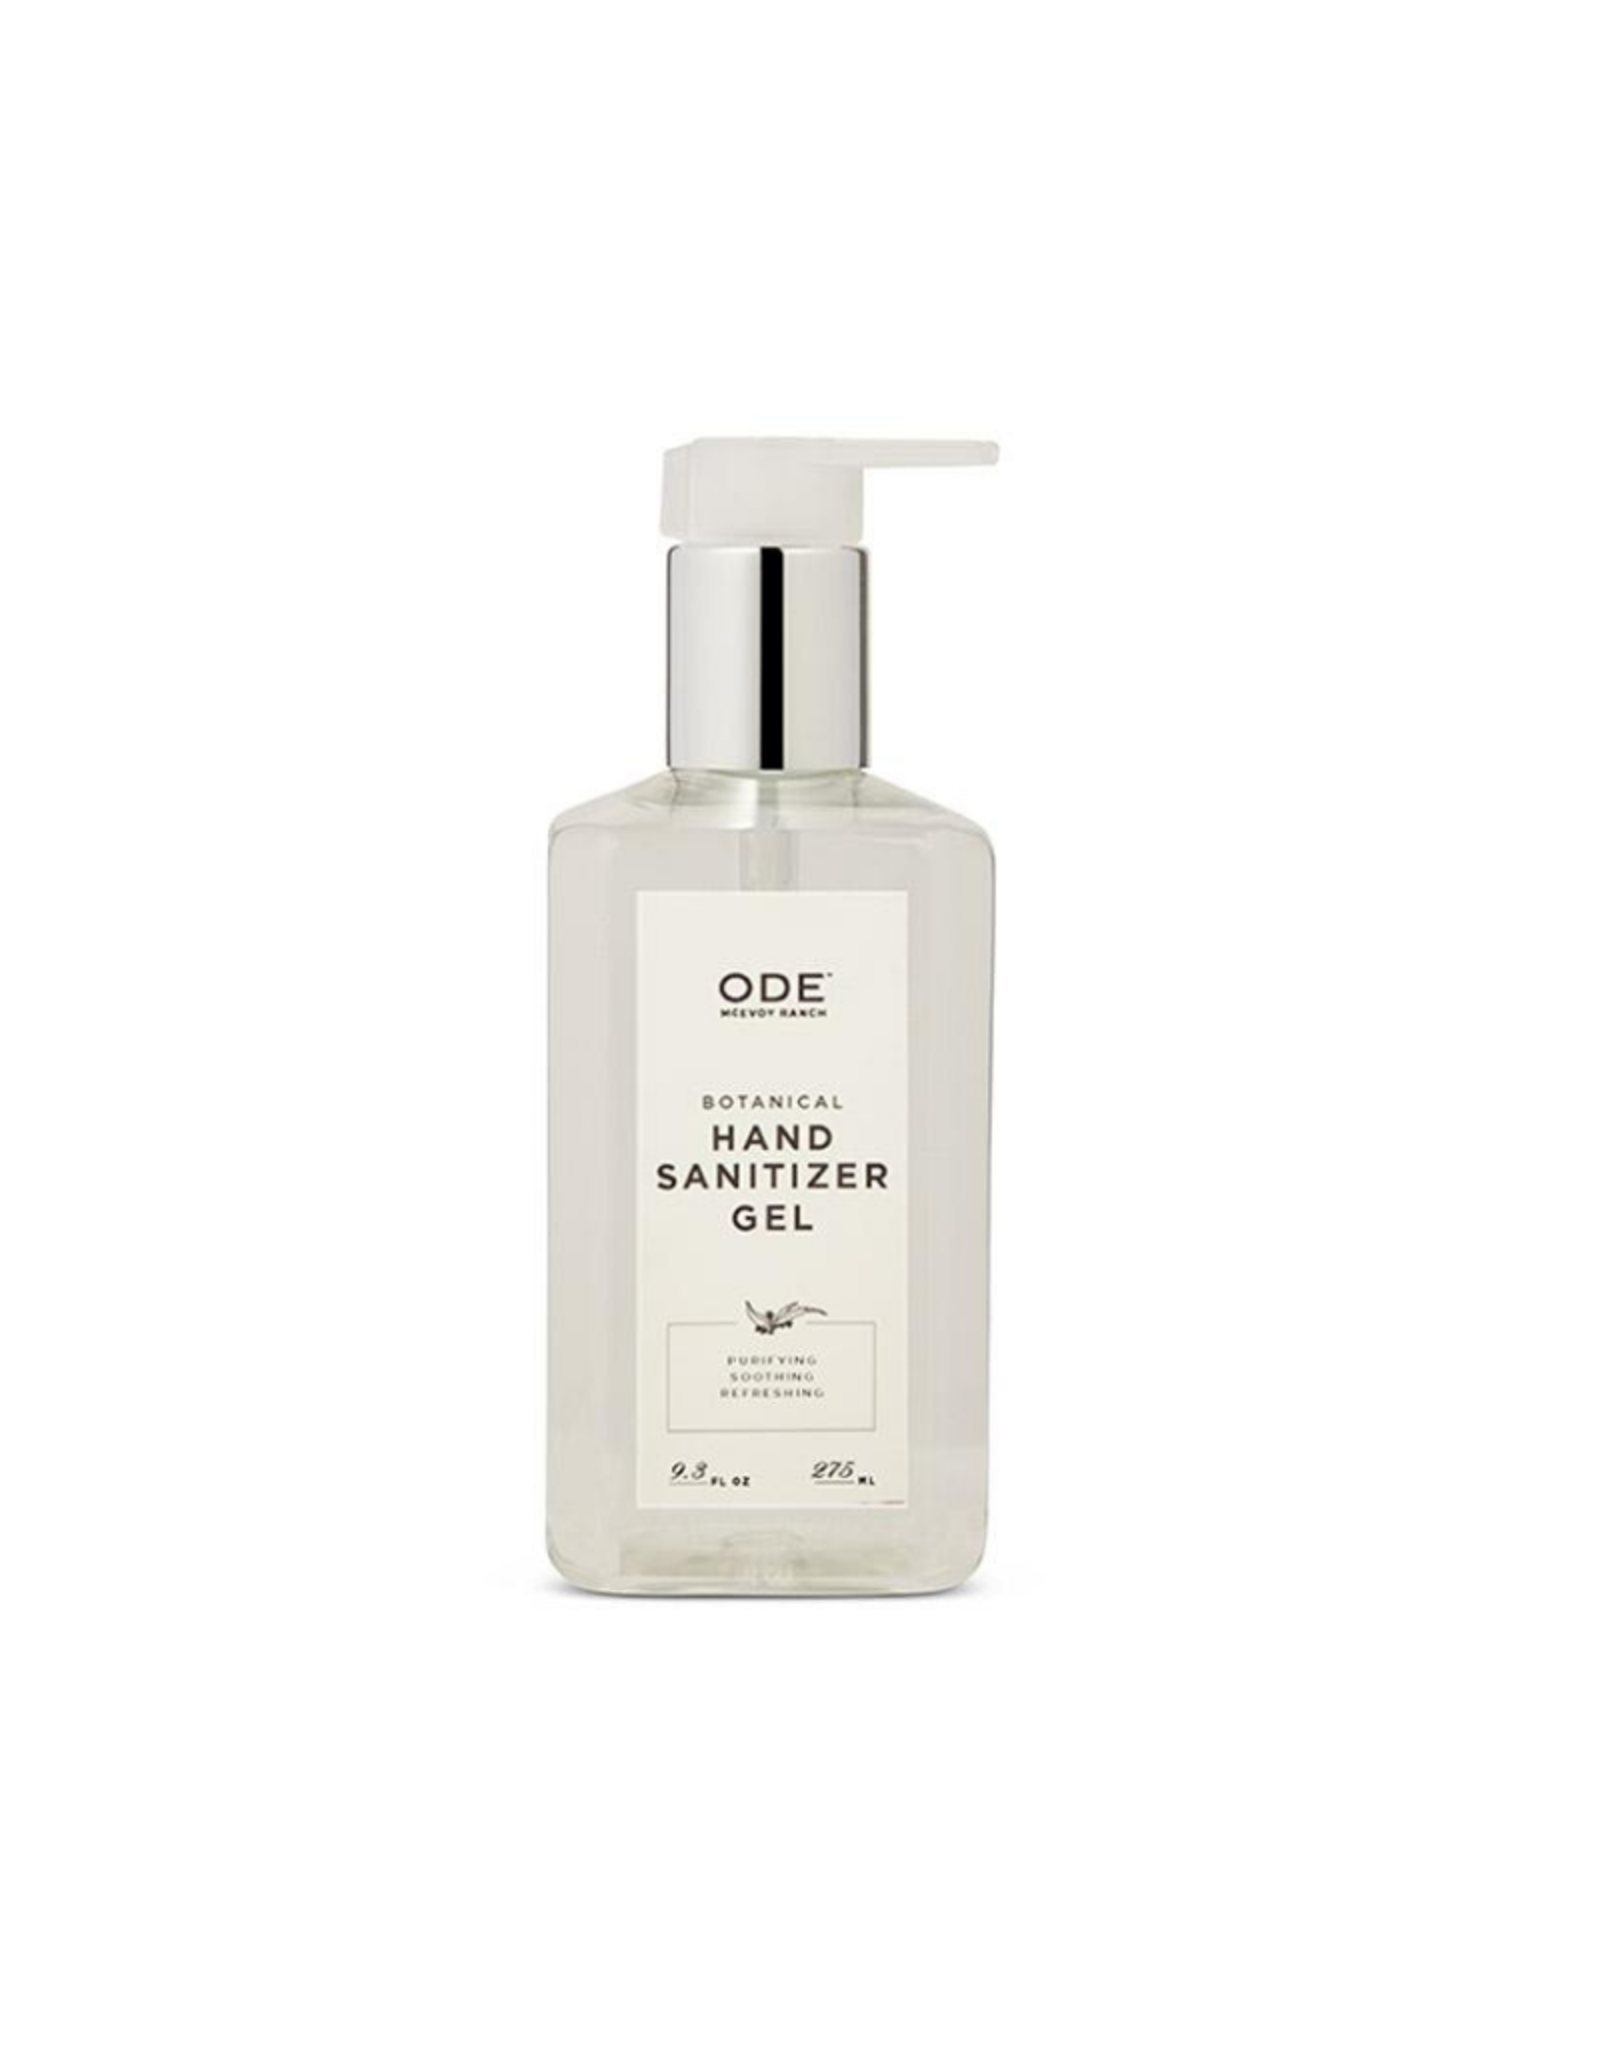 ODE ODE Botanical Hand Sanitizer Gel 9.3 oz